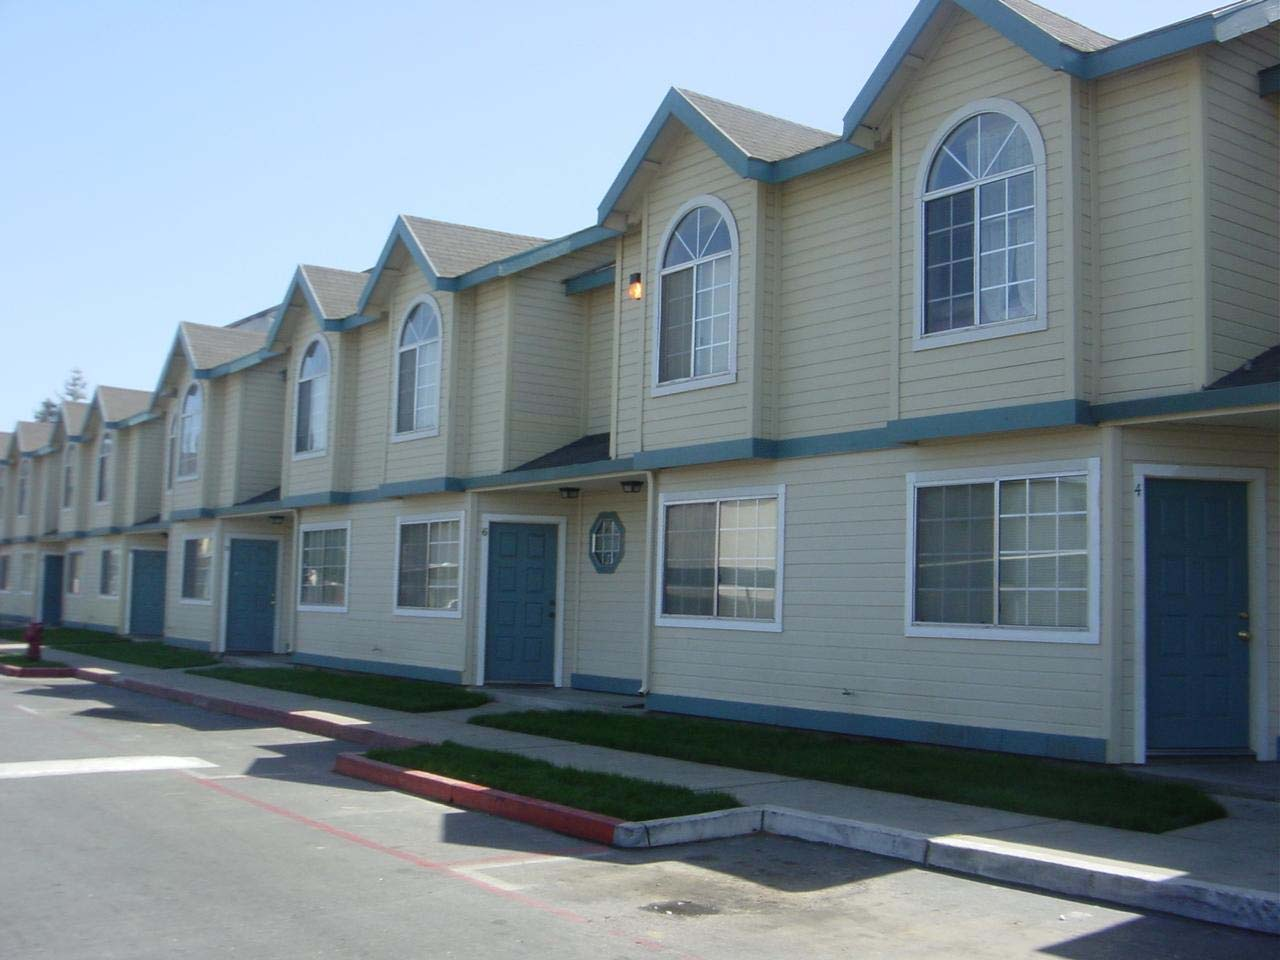 1119 Colorado Avenue & 1230 & 1108 Pioneer Avenue, Turlock, CA 95380 63 Unit Multi-Family Apartment Portfolio Consisting of Three Separate Parcels $2,725,000